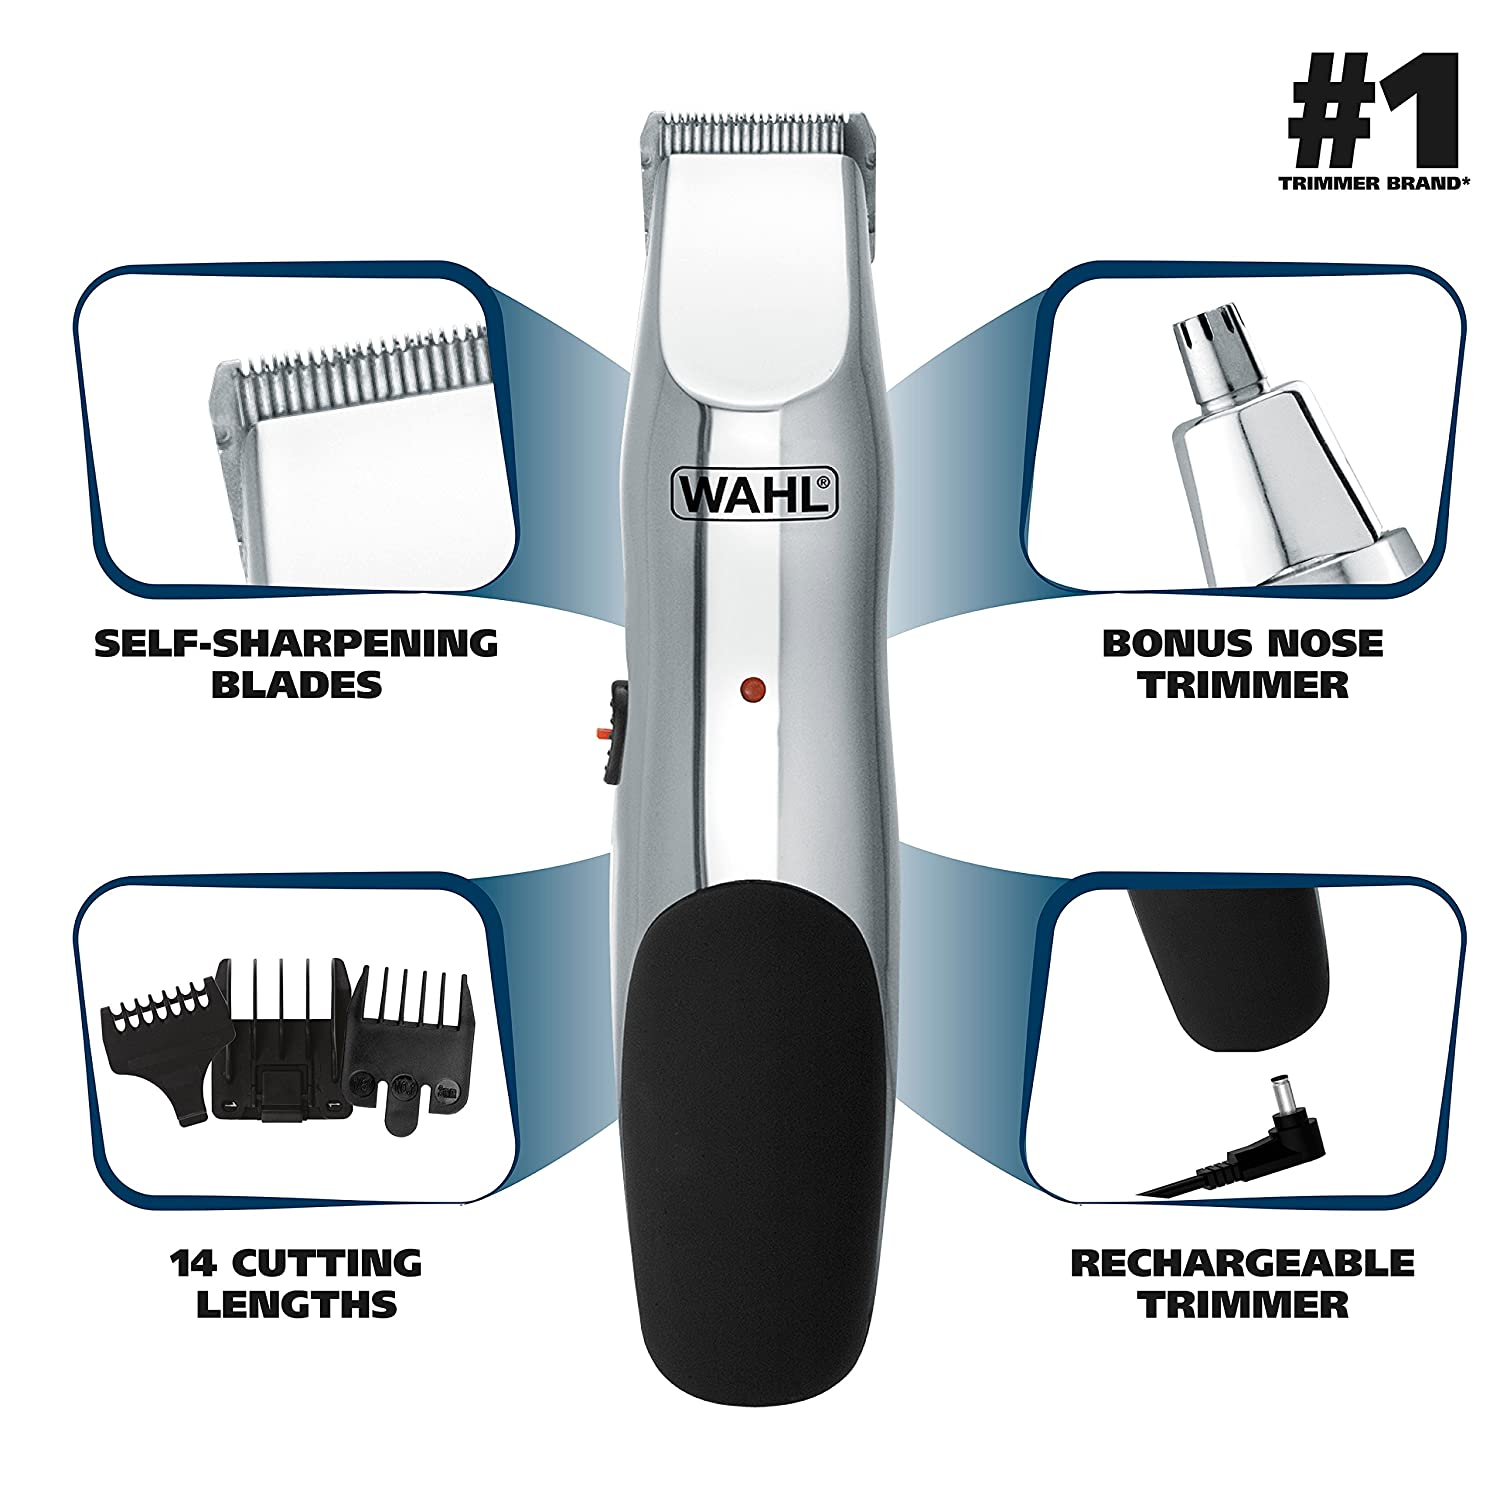 WAHL Groomsman Stubble Trimmer for Detailing & Grooming